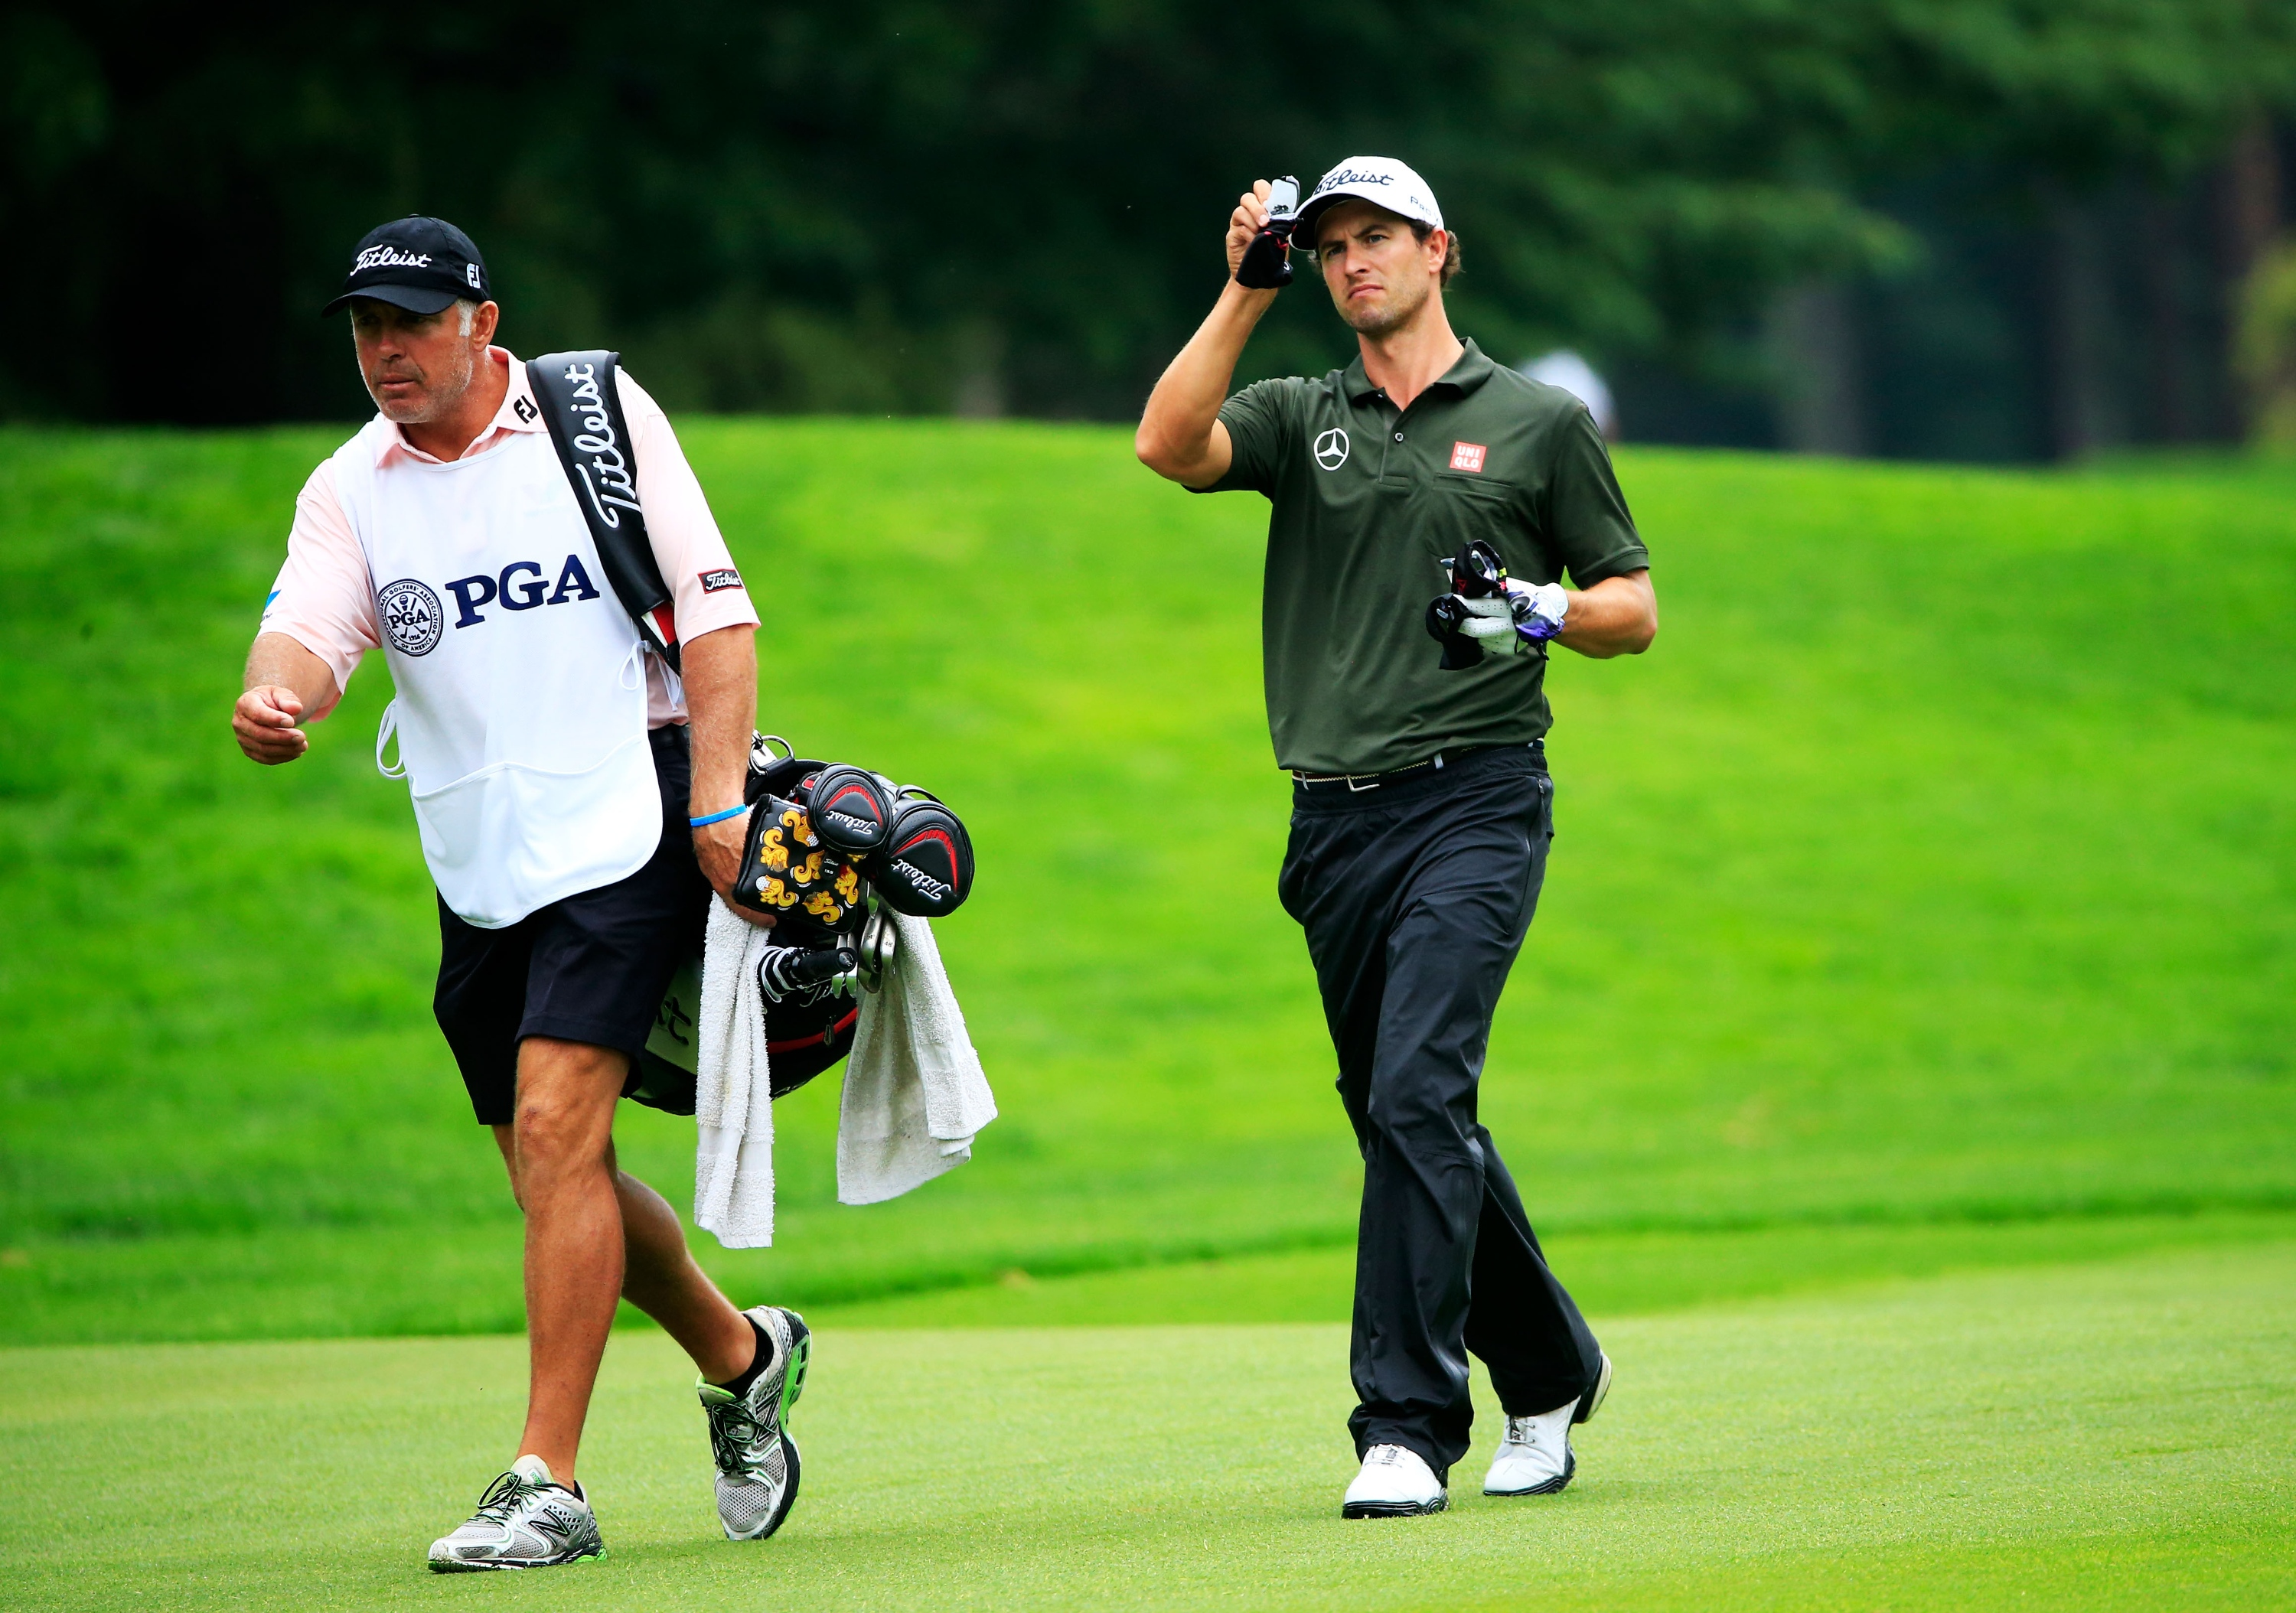 Steve Williams and Adam Scott walk up the 4th fairway during Round 2 of the PGA Championship. (Getty Images